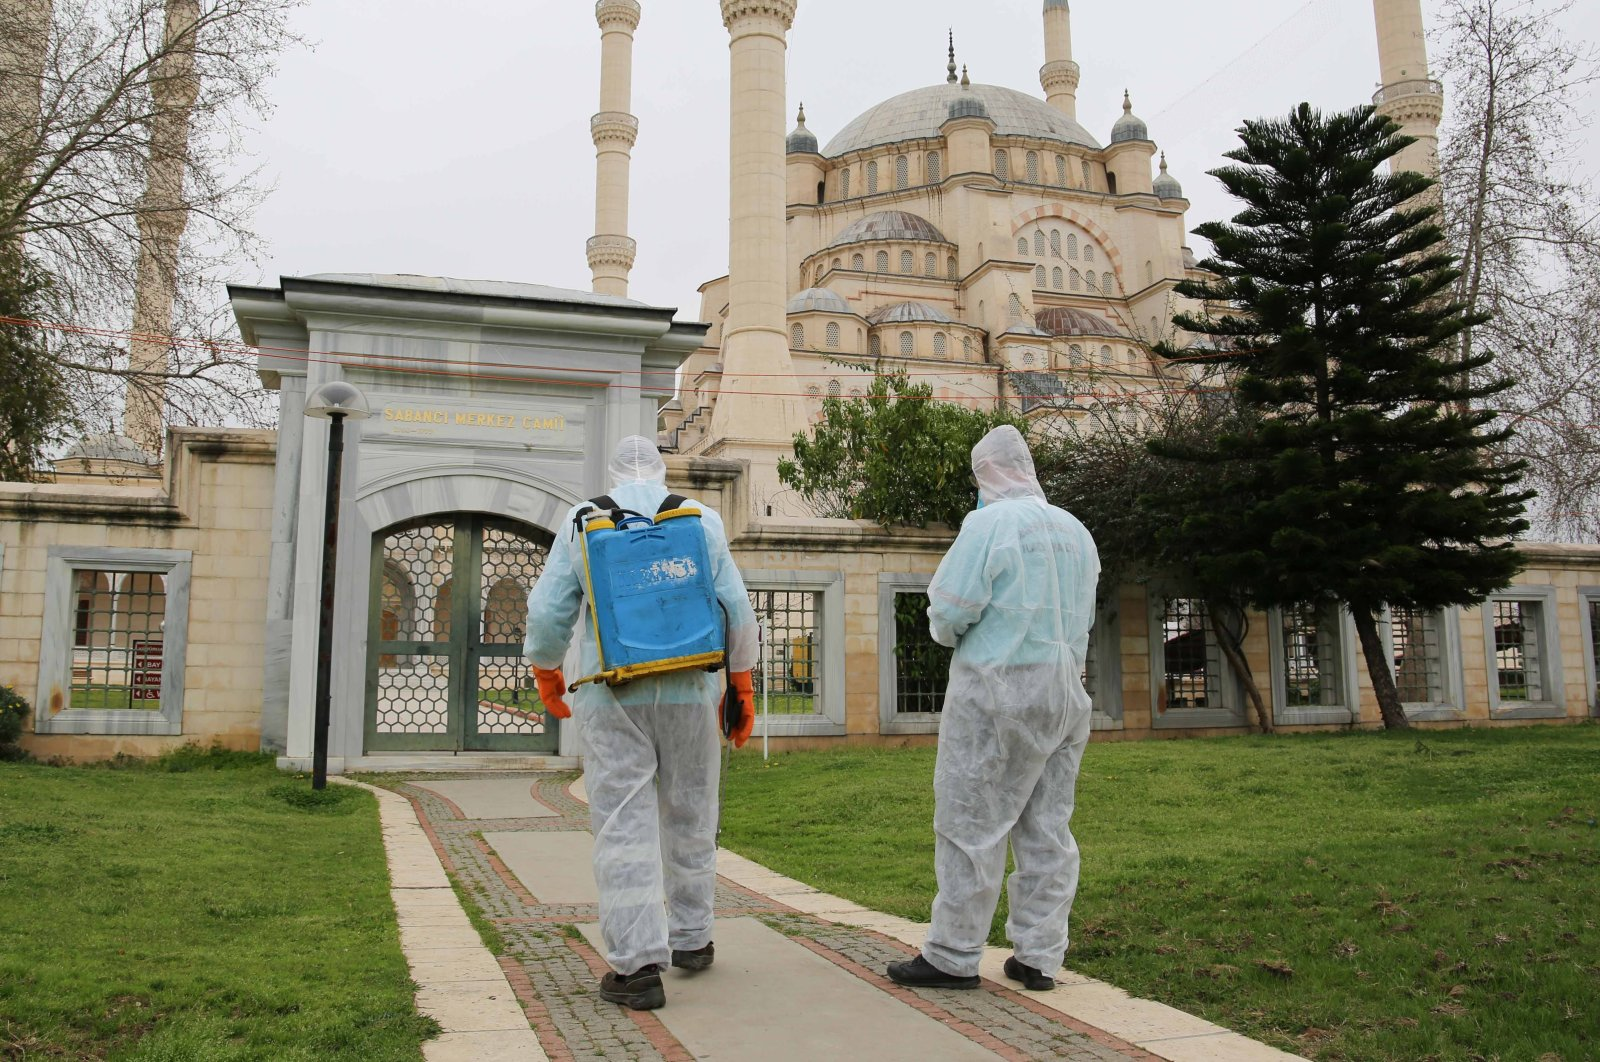 Men wearing protective suits spray disinfectant at a mosque amid the spread of the coronavirus (COVID-19) in Adana, March 12, 2020. (Photo by İHA)